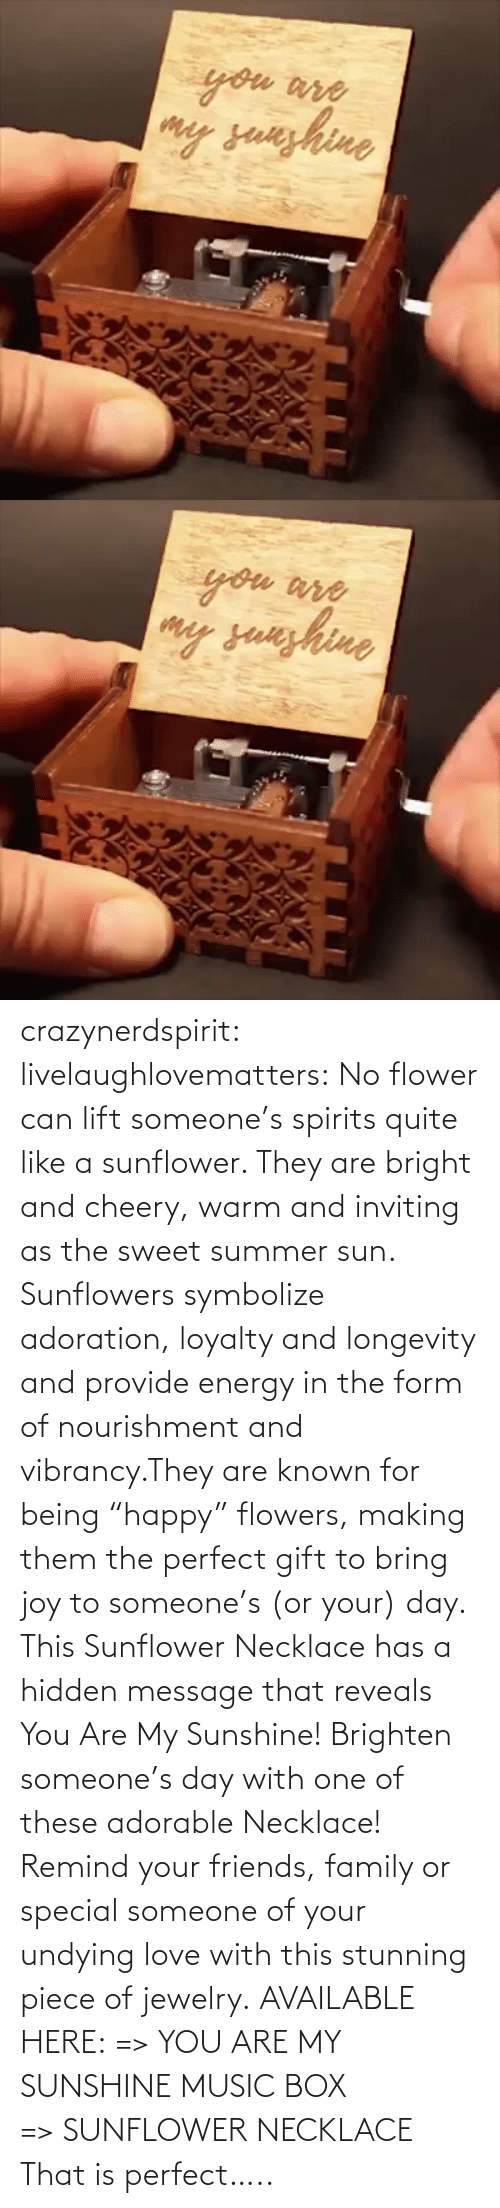 """My Sunshine: crazynerdspirit: livelaughlovematters:   No flower can lift someone's spirits quite like a sunflower. They are bright and cheery, warm and inviting as the sweet summer sun. Sunflowers symbolize adoration, loyalty and longevity and provide energy in the form of nourishment and vibrancy.They are known for being """"happy"""" flowers, making them the perfect gift to bring joy to someone's (or your) day. This Sunflower Necklace has a hidden message that reveals You Are My Sunshine! Brighten someone's day with one of these adorable Necklace! Remind your friends, family or special someone of your undying love with this stunning piece of jewelry. AVAILABLE HERE: =>YOU ARE MY SUNSHINE MUSIC BOX =>SUNFLOWER NECKLACE    That is perfect….."""